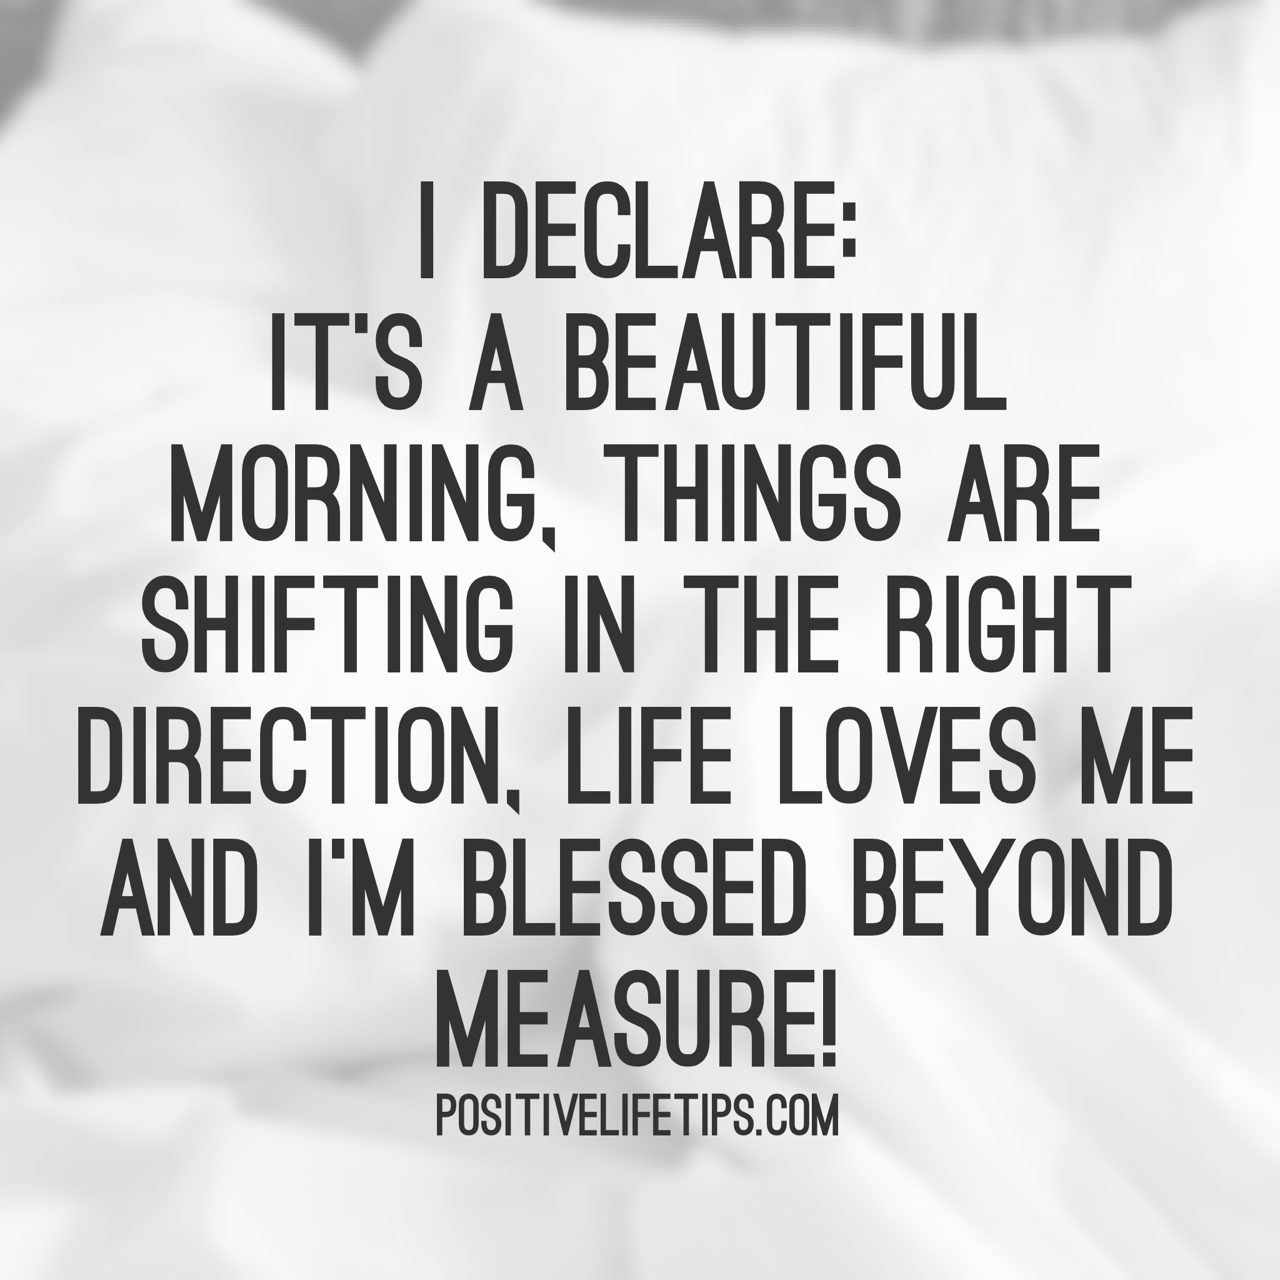 I Have No Direction In Life Quotes: I Declare: It's A Beautiful Morning, Things Are Shifting